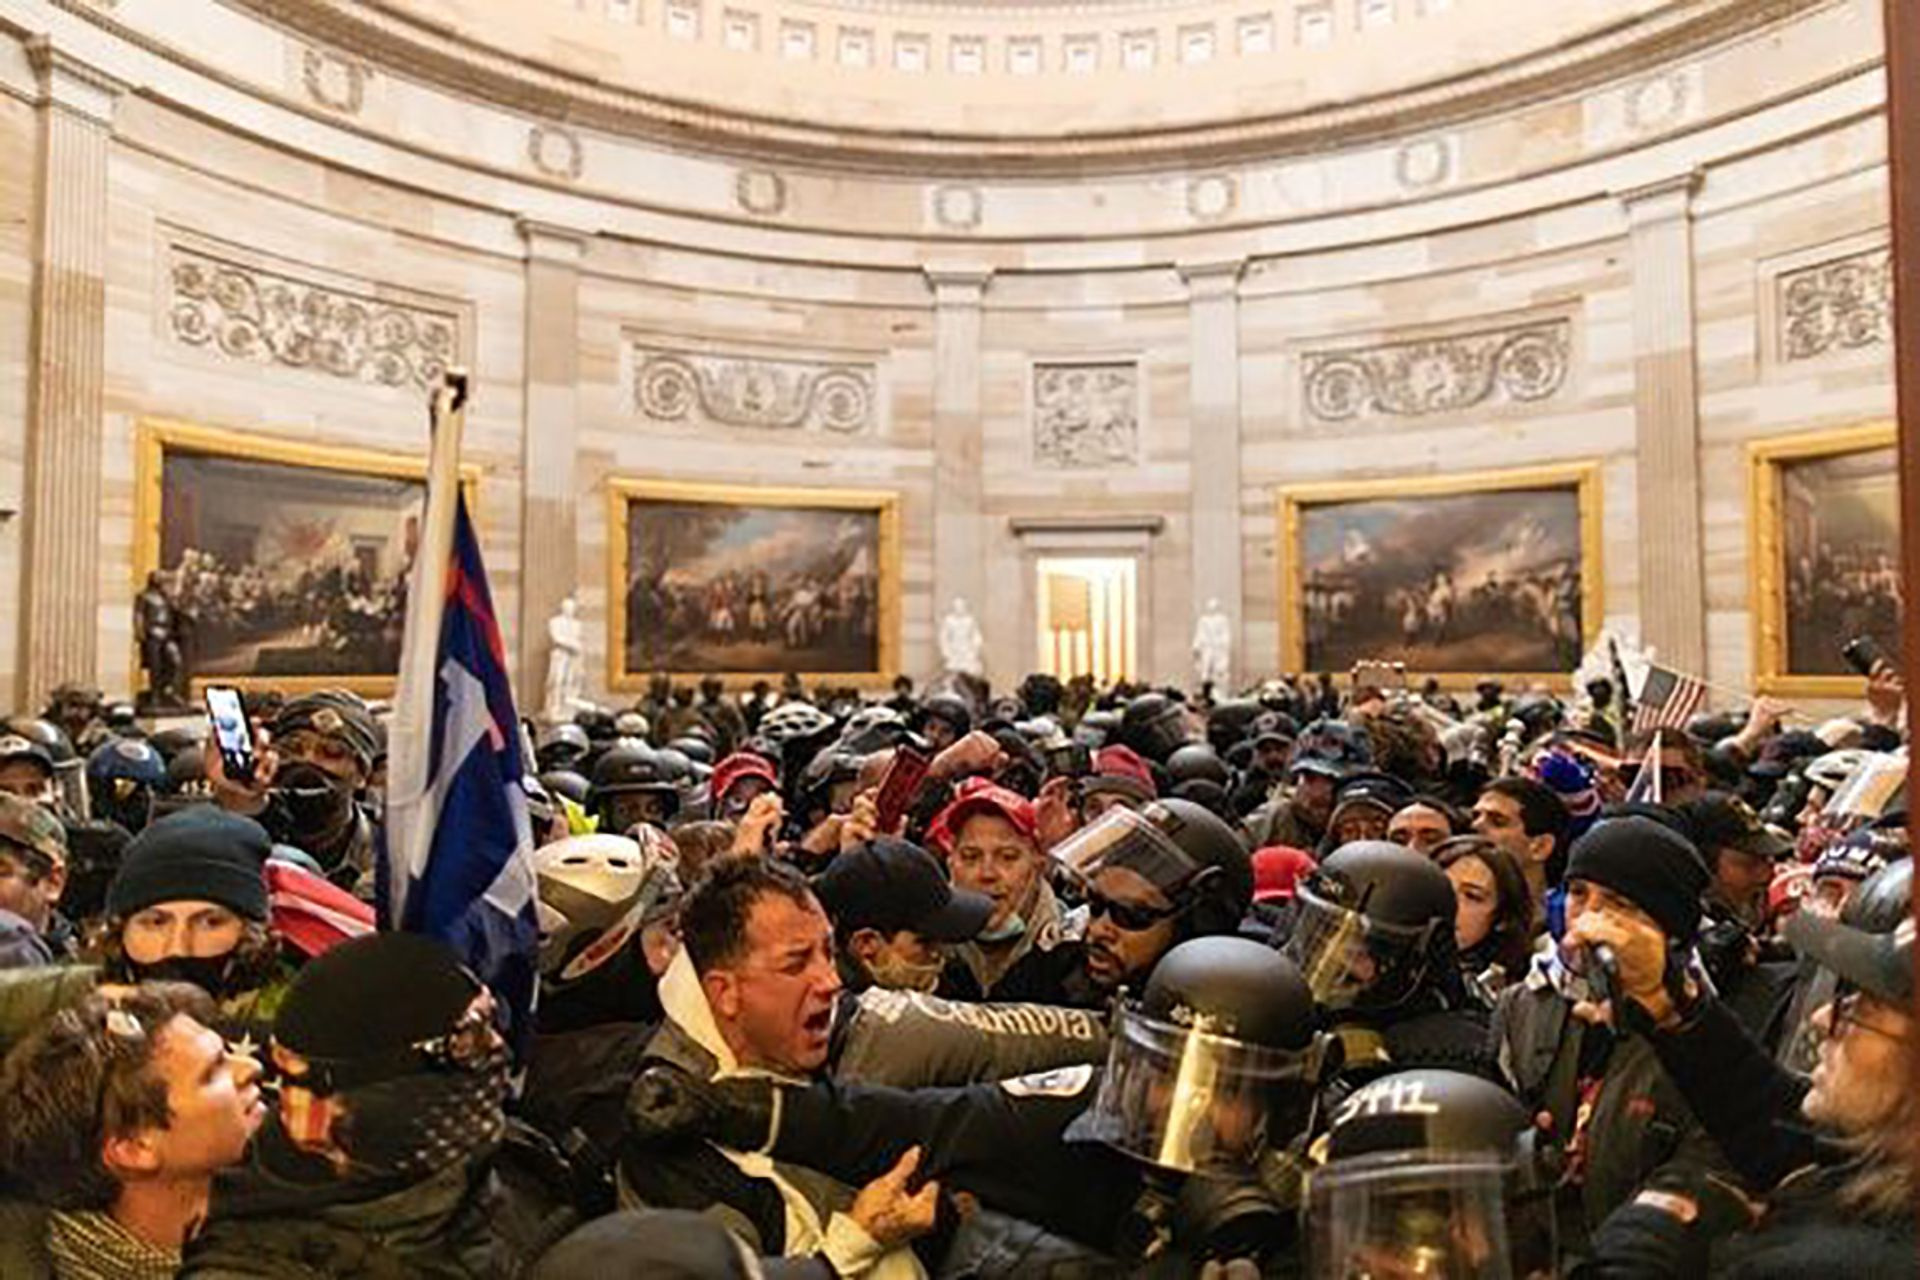 Pro-Trump protesters storming the public spaces of the US Capitol on 6 January Mostafa Bassim/Anadolu Agency via Getty Images